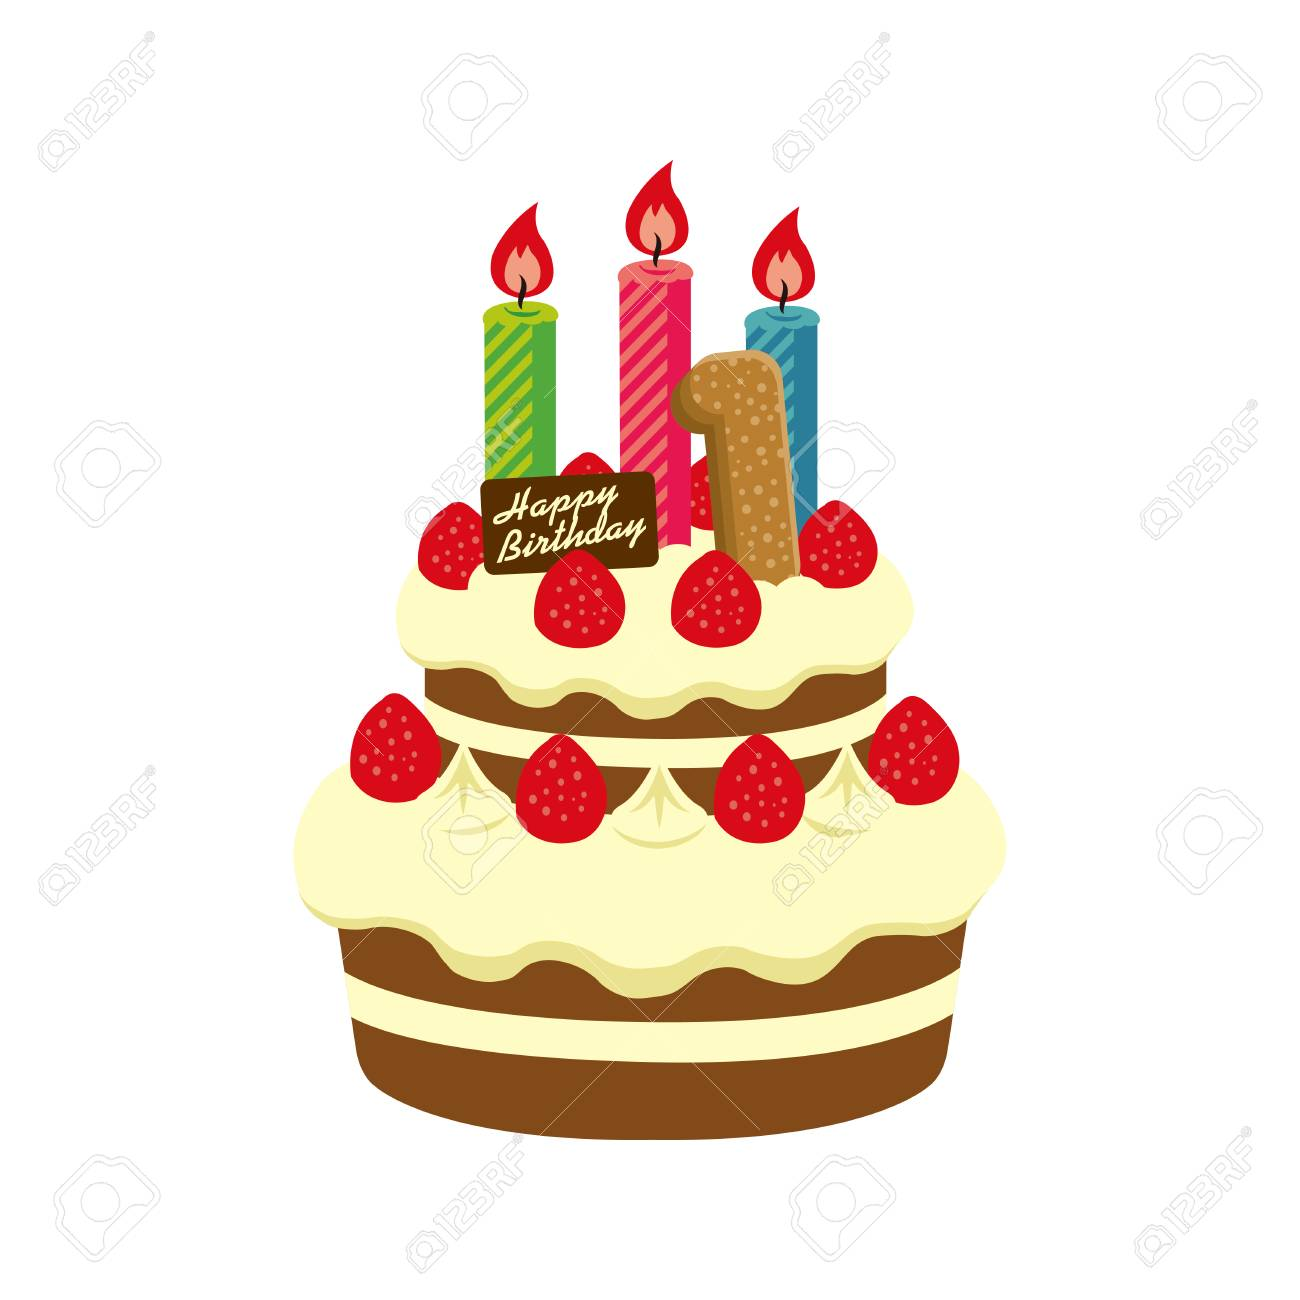 Phenomenal Birthday Cake Illustration For 1 Year Old Royalty Free Cliparts Personalised Birthday Cards Paralily Jamesorg